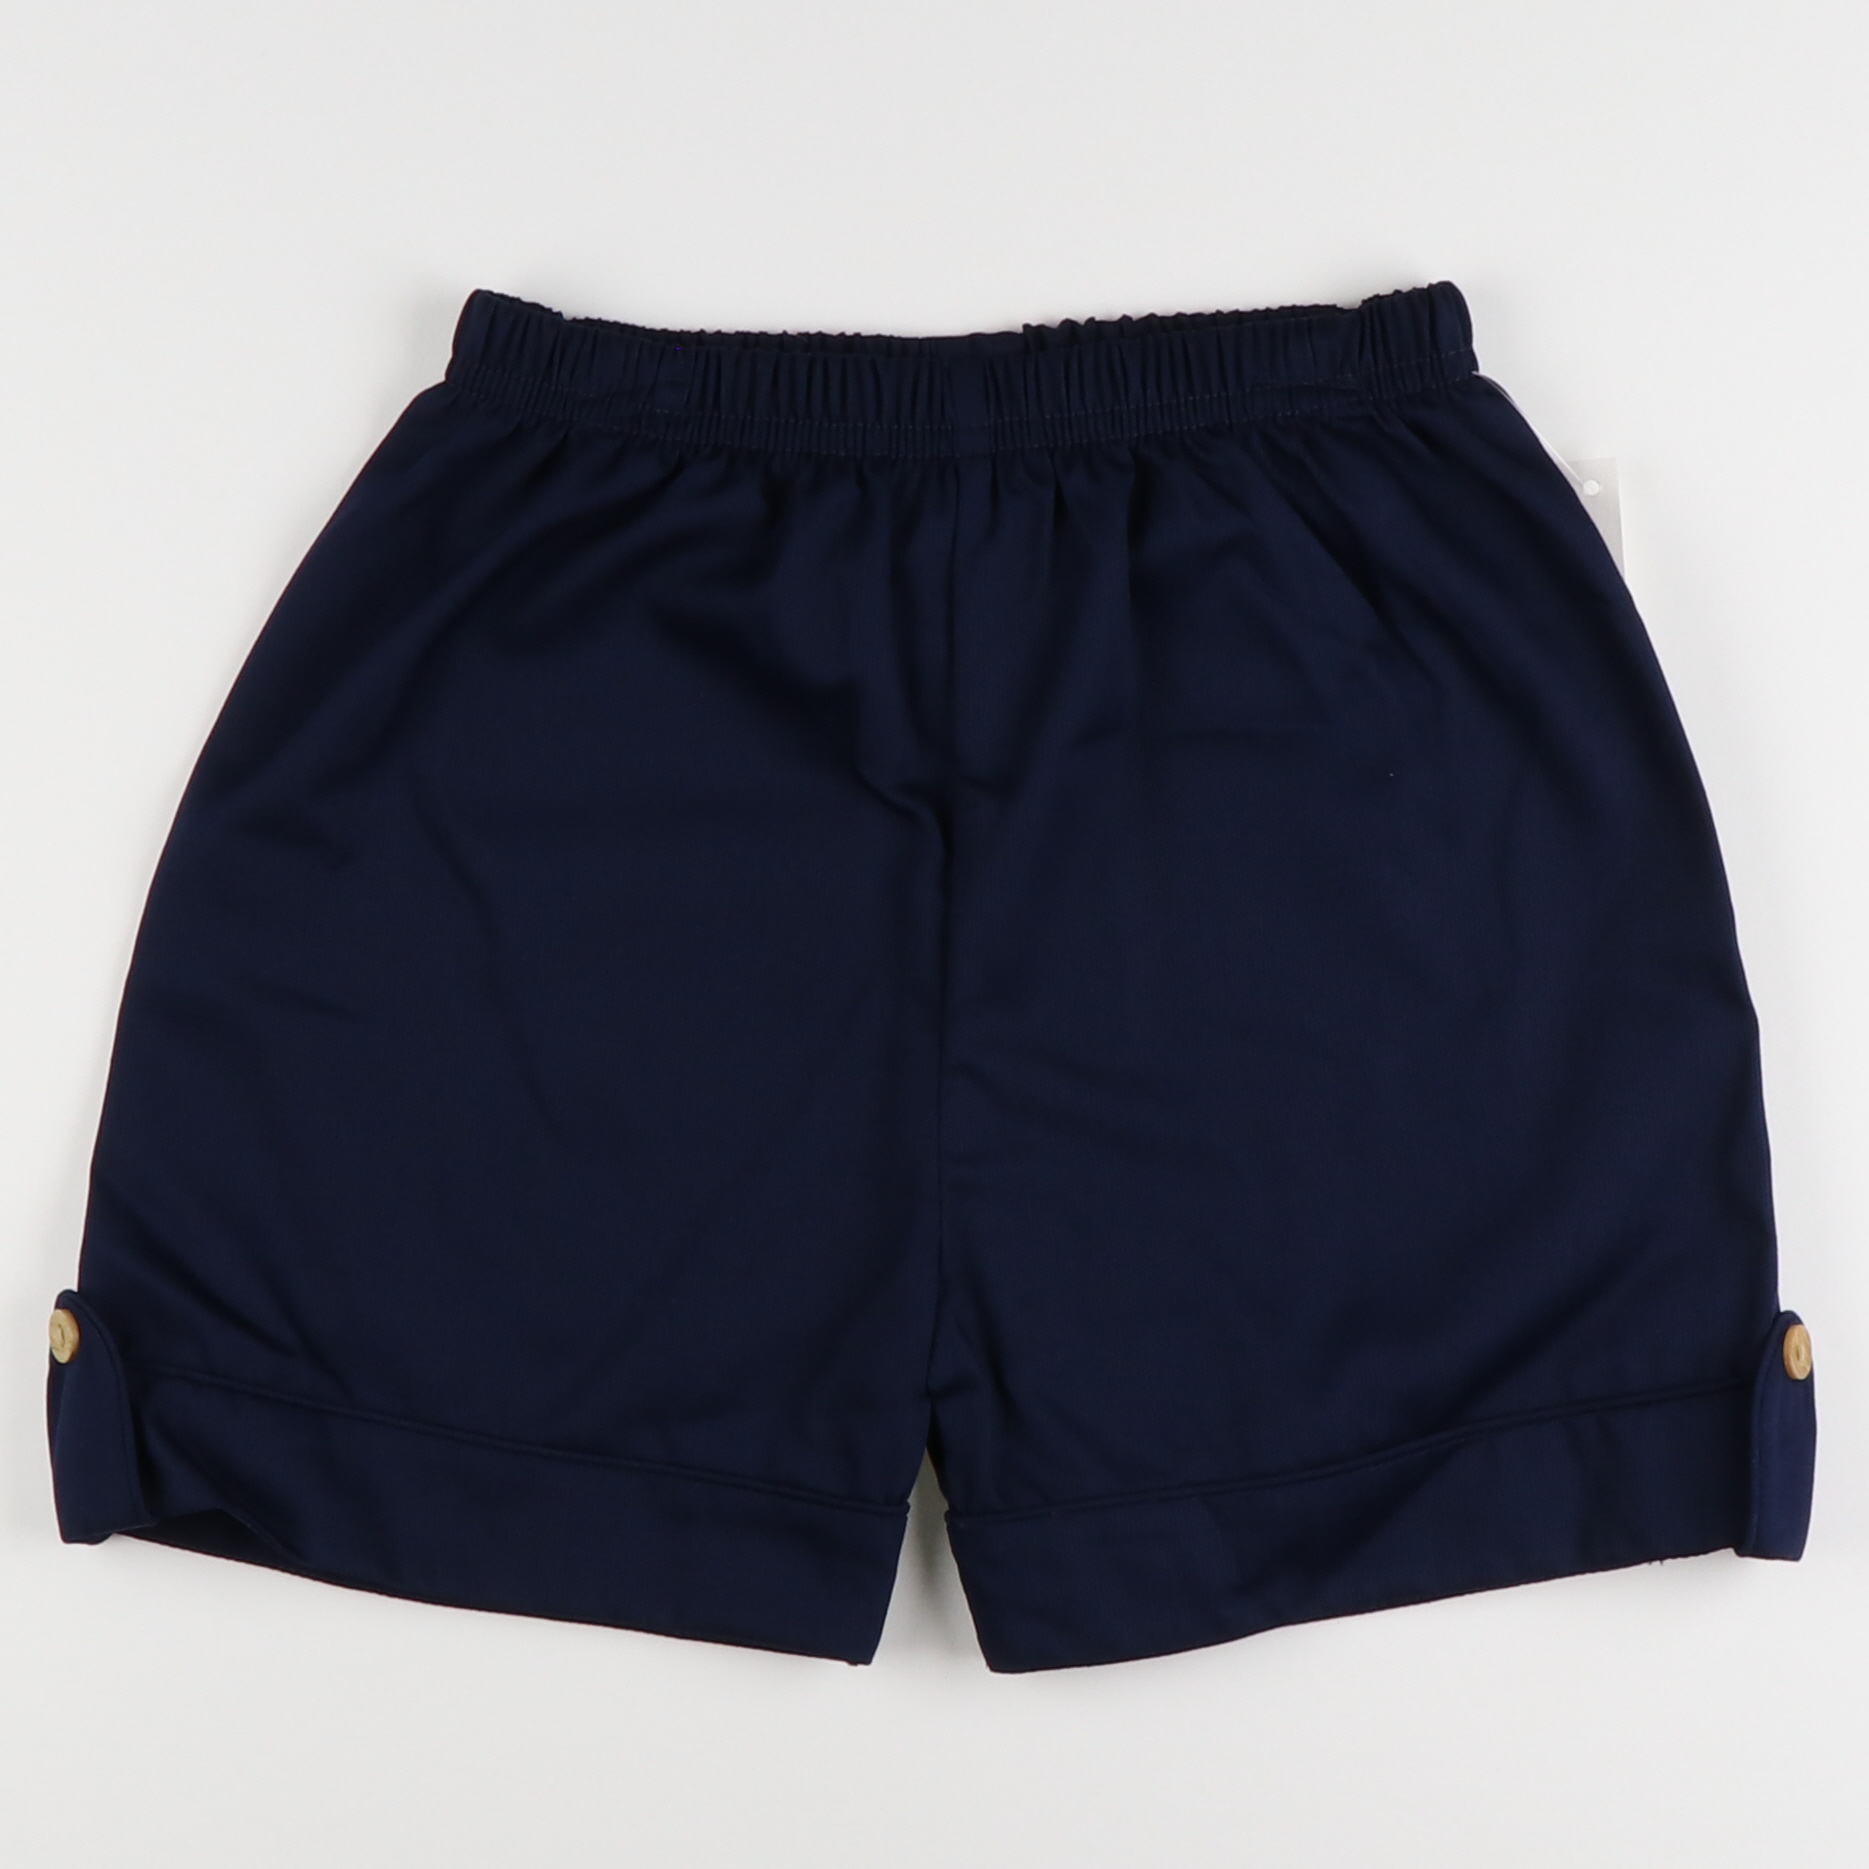 Navy Pique Prep Shorts with Tabs